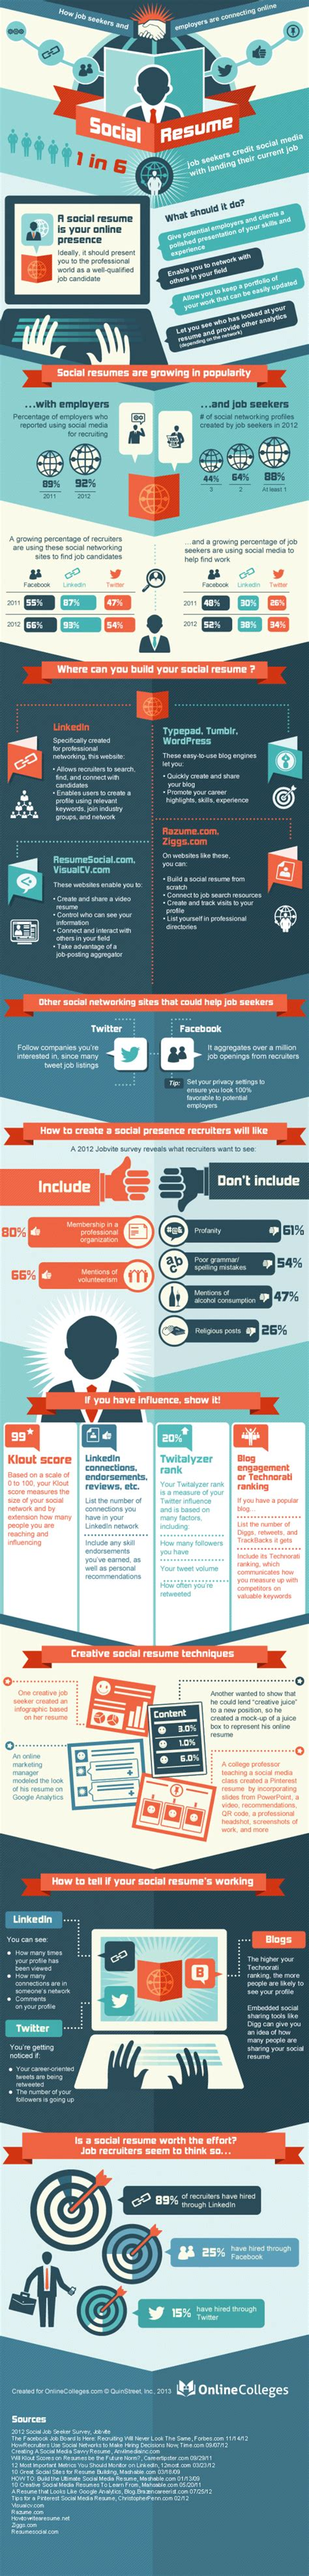 resume cv tips and tricks infographic